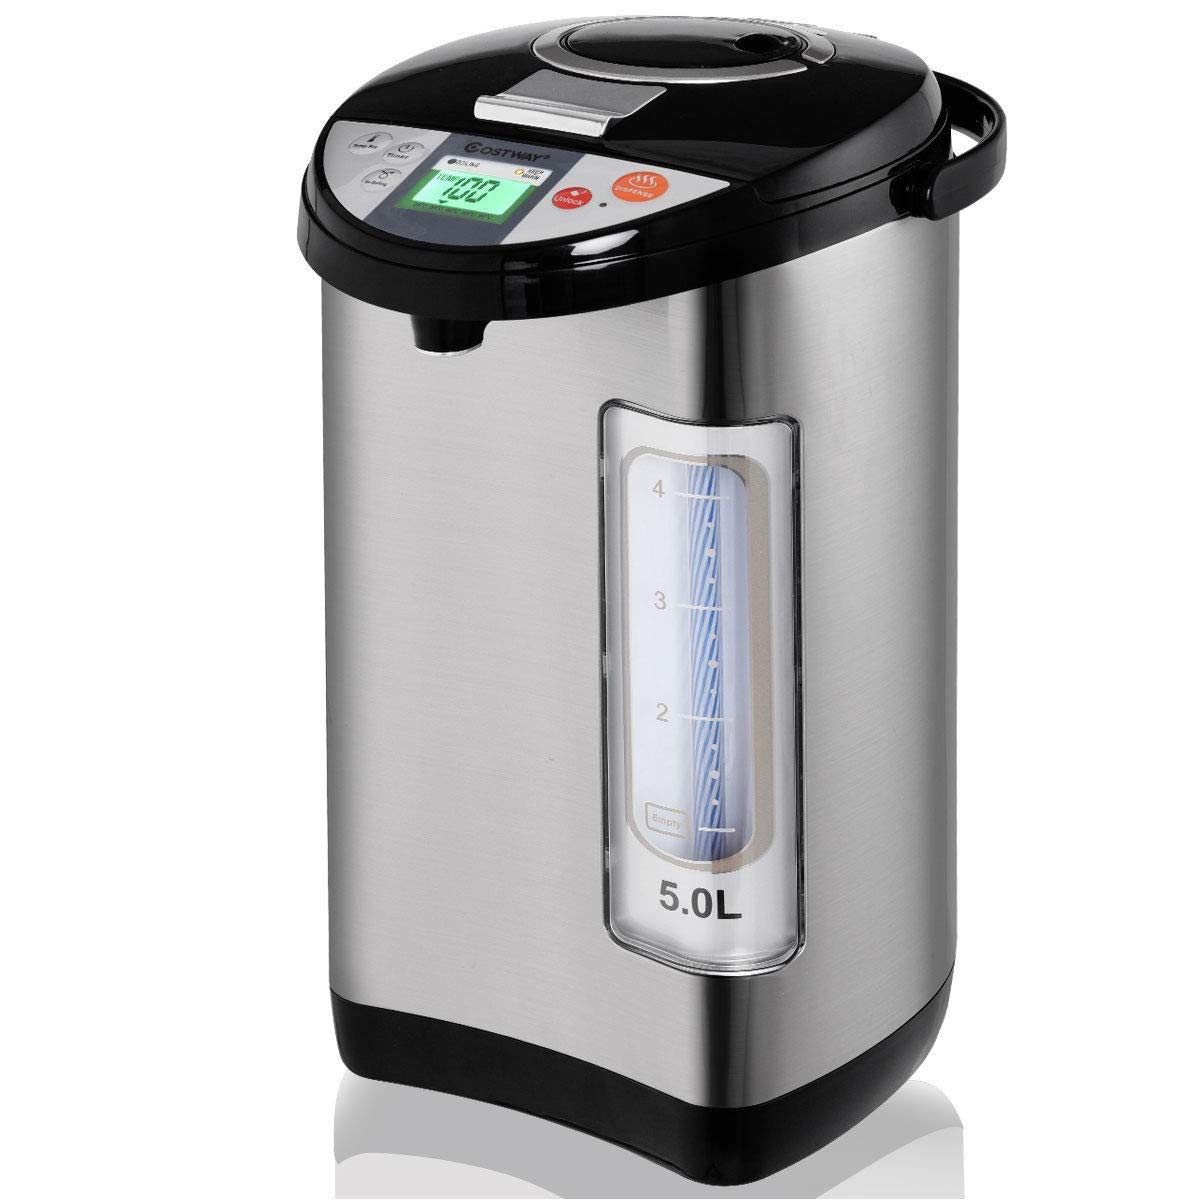 5-Liter Water Boiler and Warmer Electric Hot Water Dispenser | Food Grade Stainless Steel Boil Warm Kettle With LCD Display | 3 Water Dispensing Method | Timer Quick Reheating Function by Cway